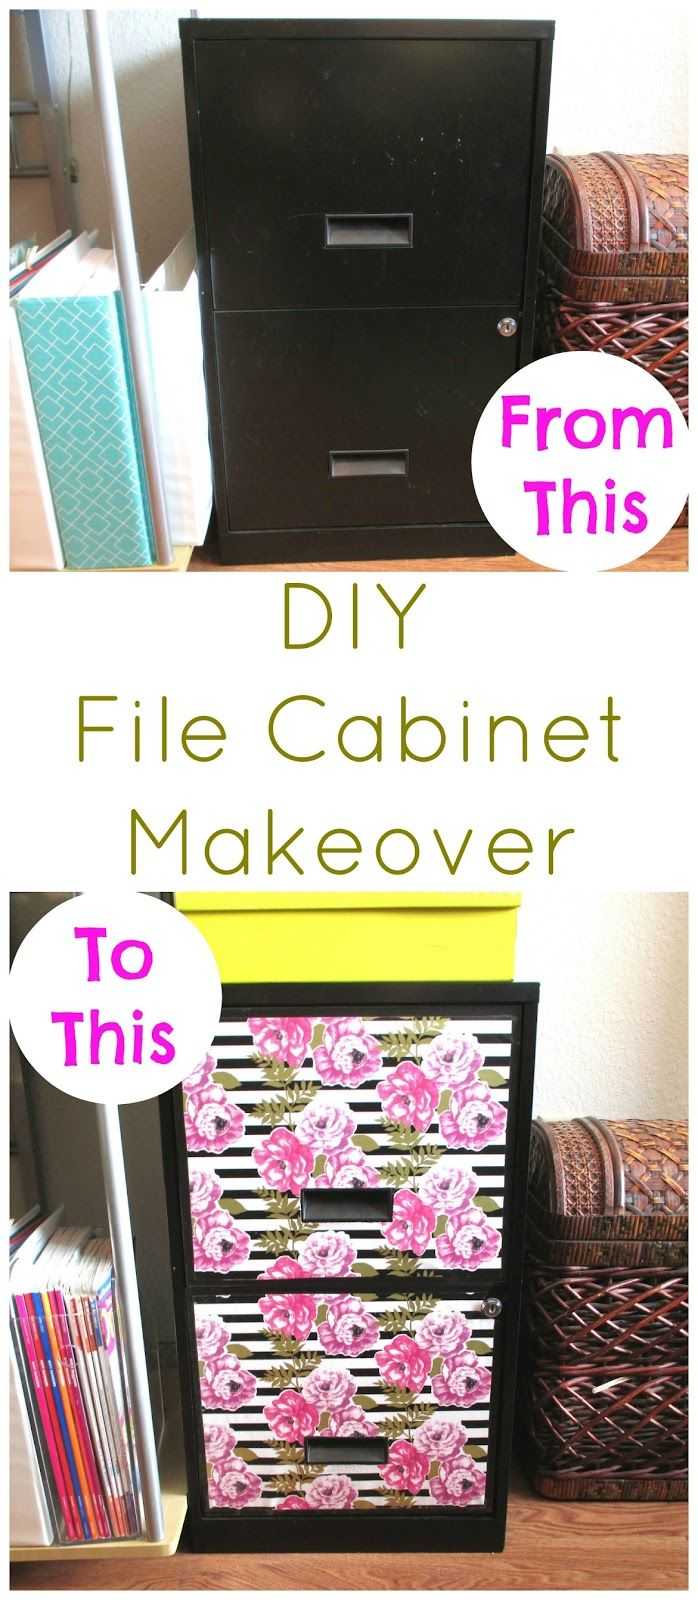 covering furniture with contact paper. DIY File Cabinet Makeover - Easy Using Wrapping Paper And Contact Shelf Liner Covering Furniture With